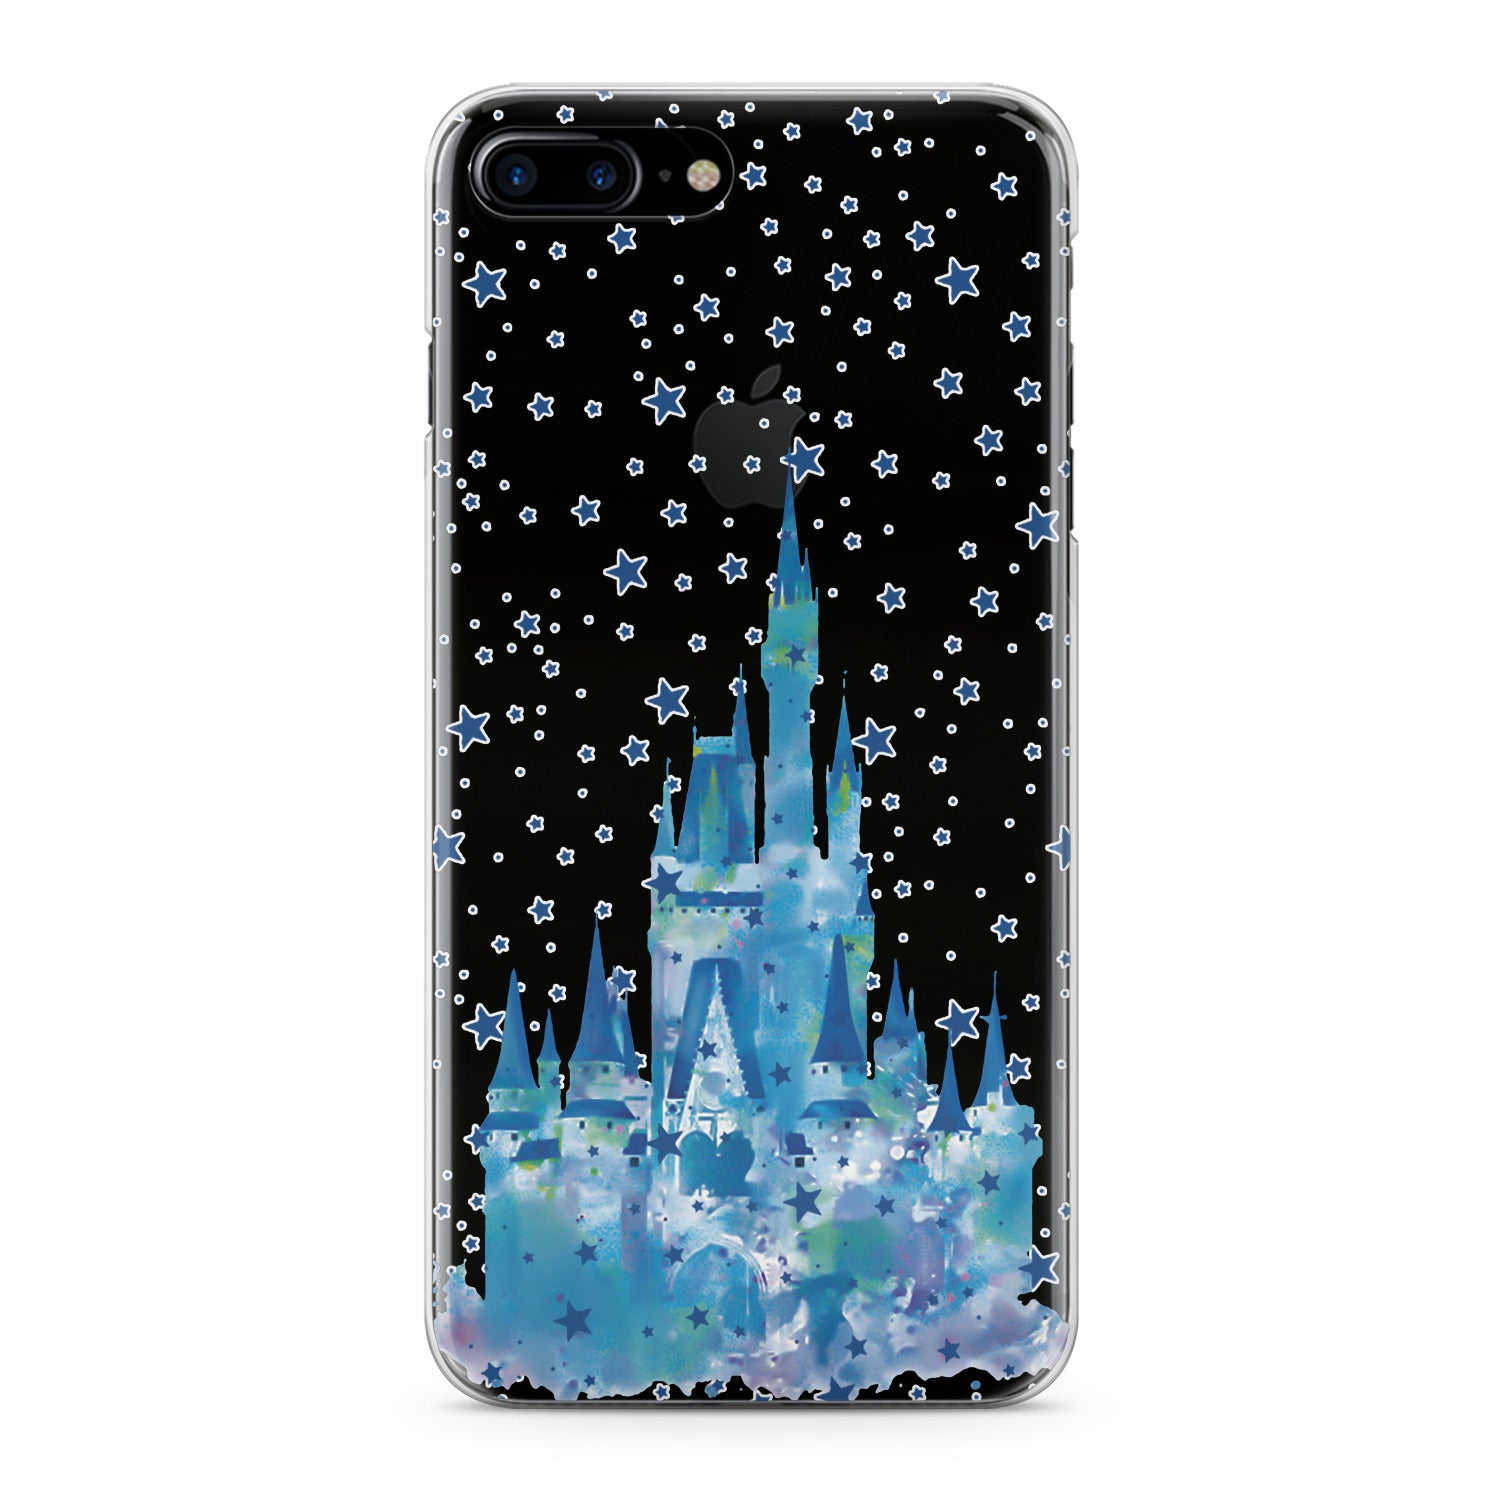 Lex Altern Cartoon Castle Art Phone Case for your iPhone & Android phone.